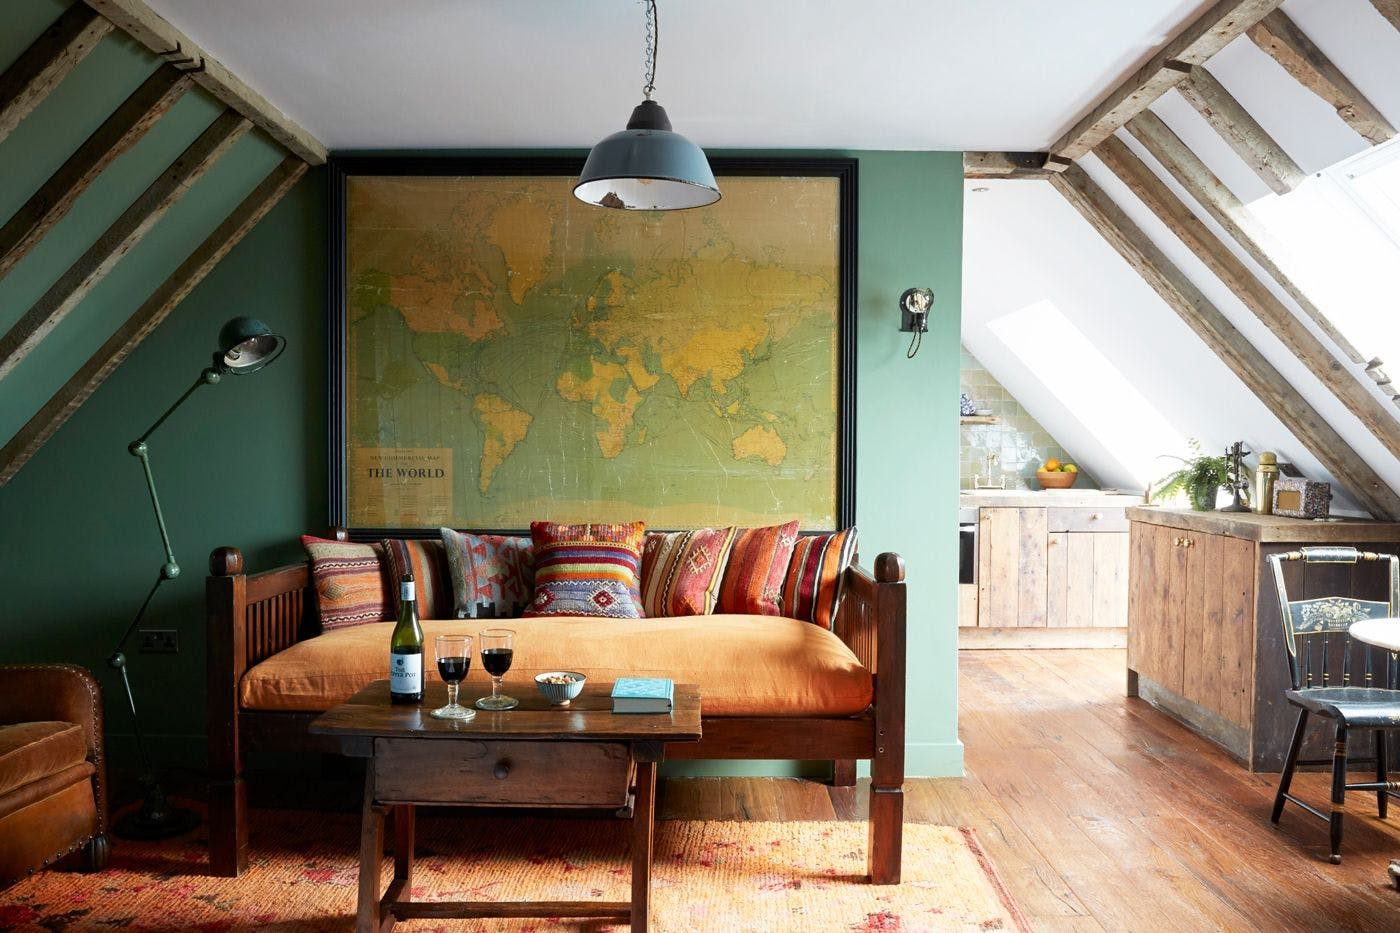 stylist and luxury how to design a dog house.  Britain s best boutique hotels for 100 or less Stylist